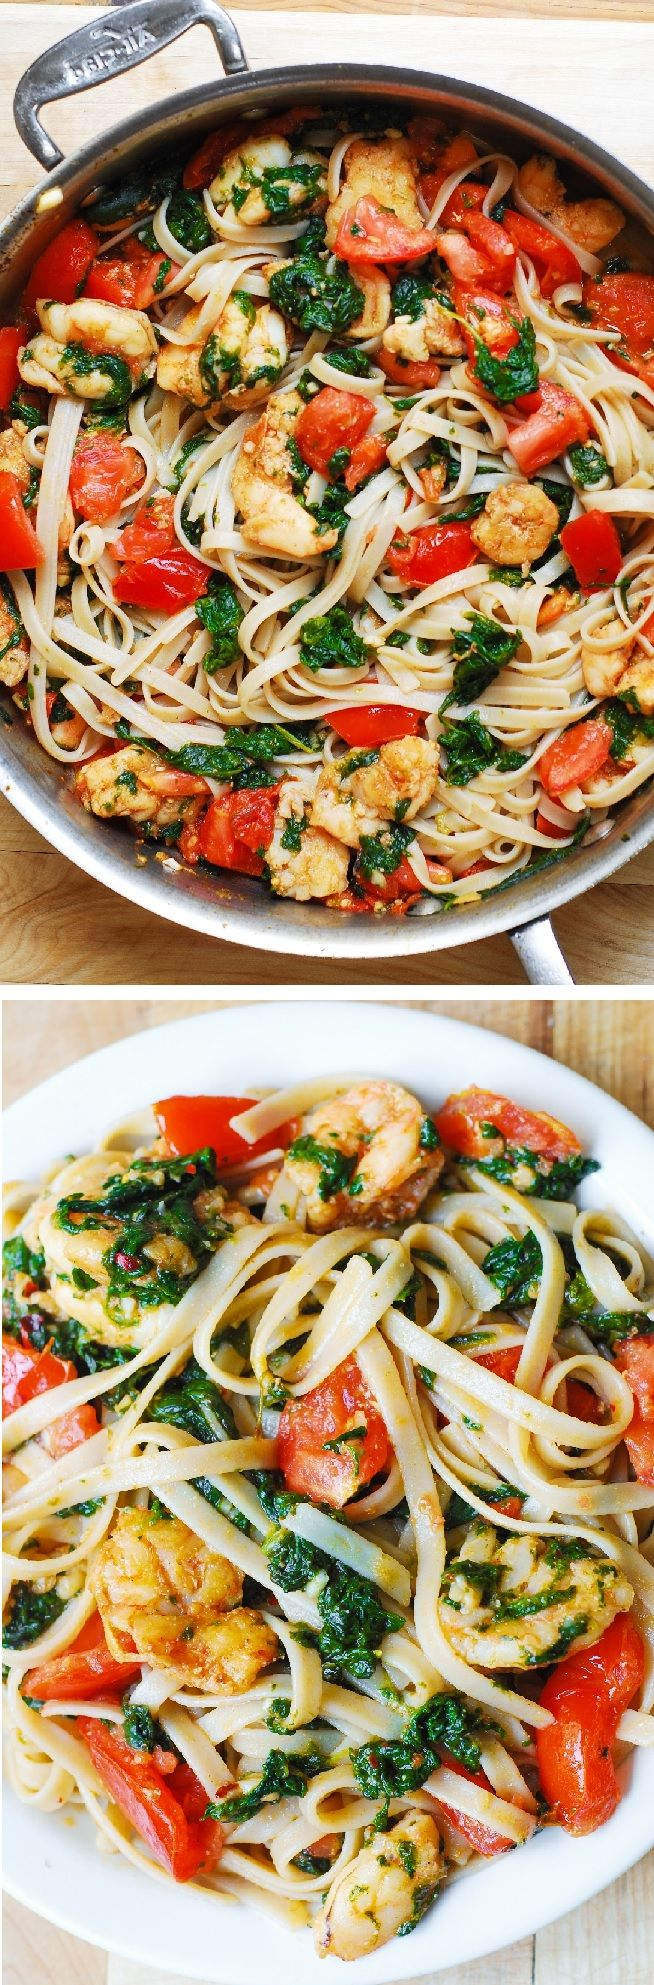 Shrimp, fresh tomatoes, and spinach with fettuccine pasta in garlic butter sauce.